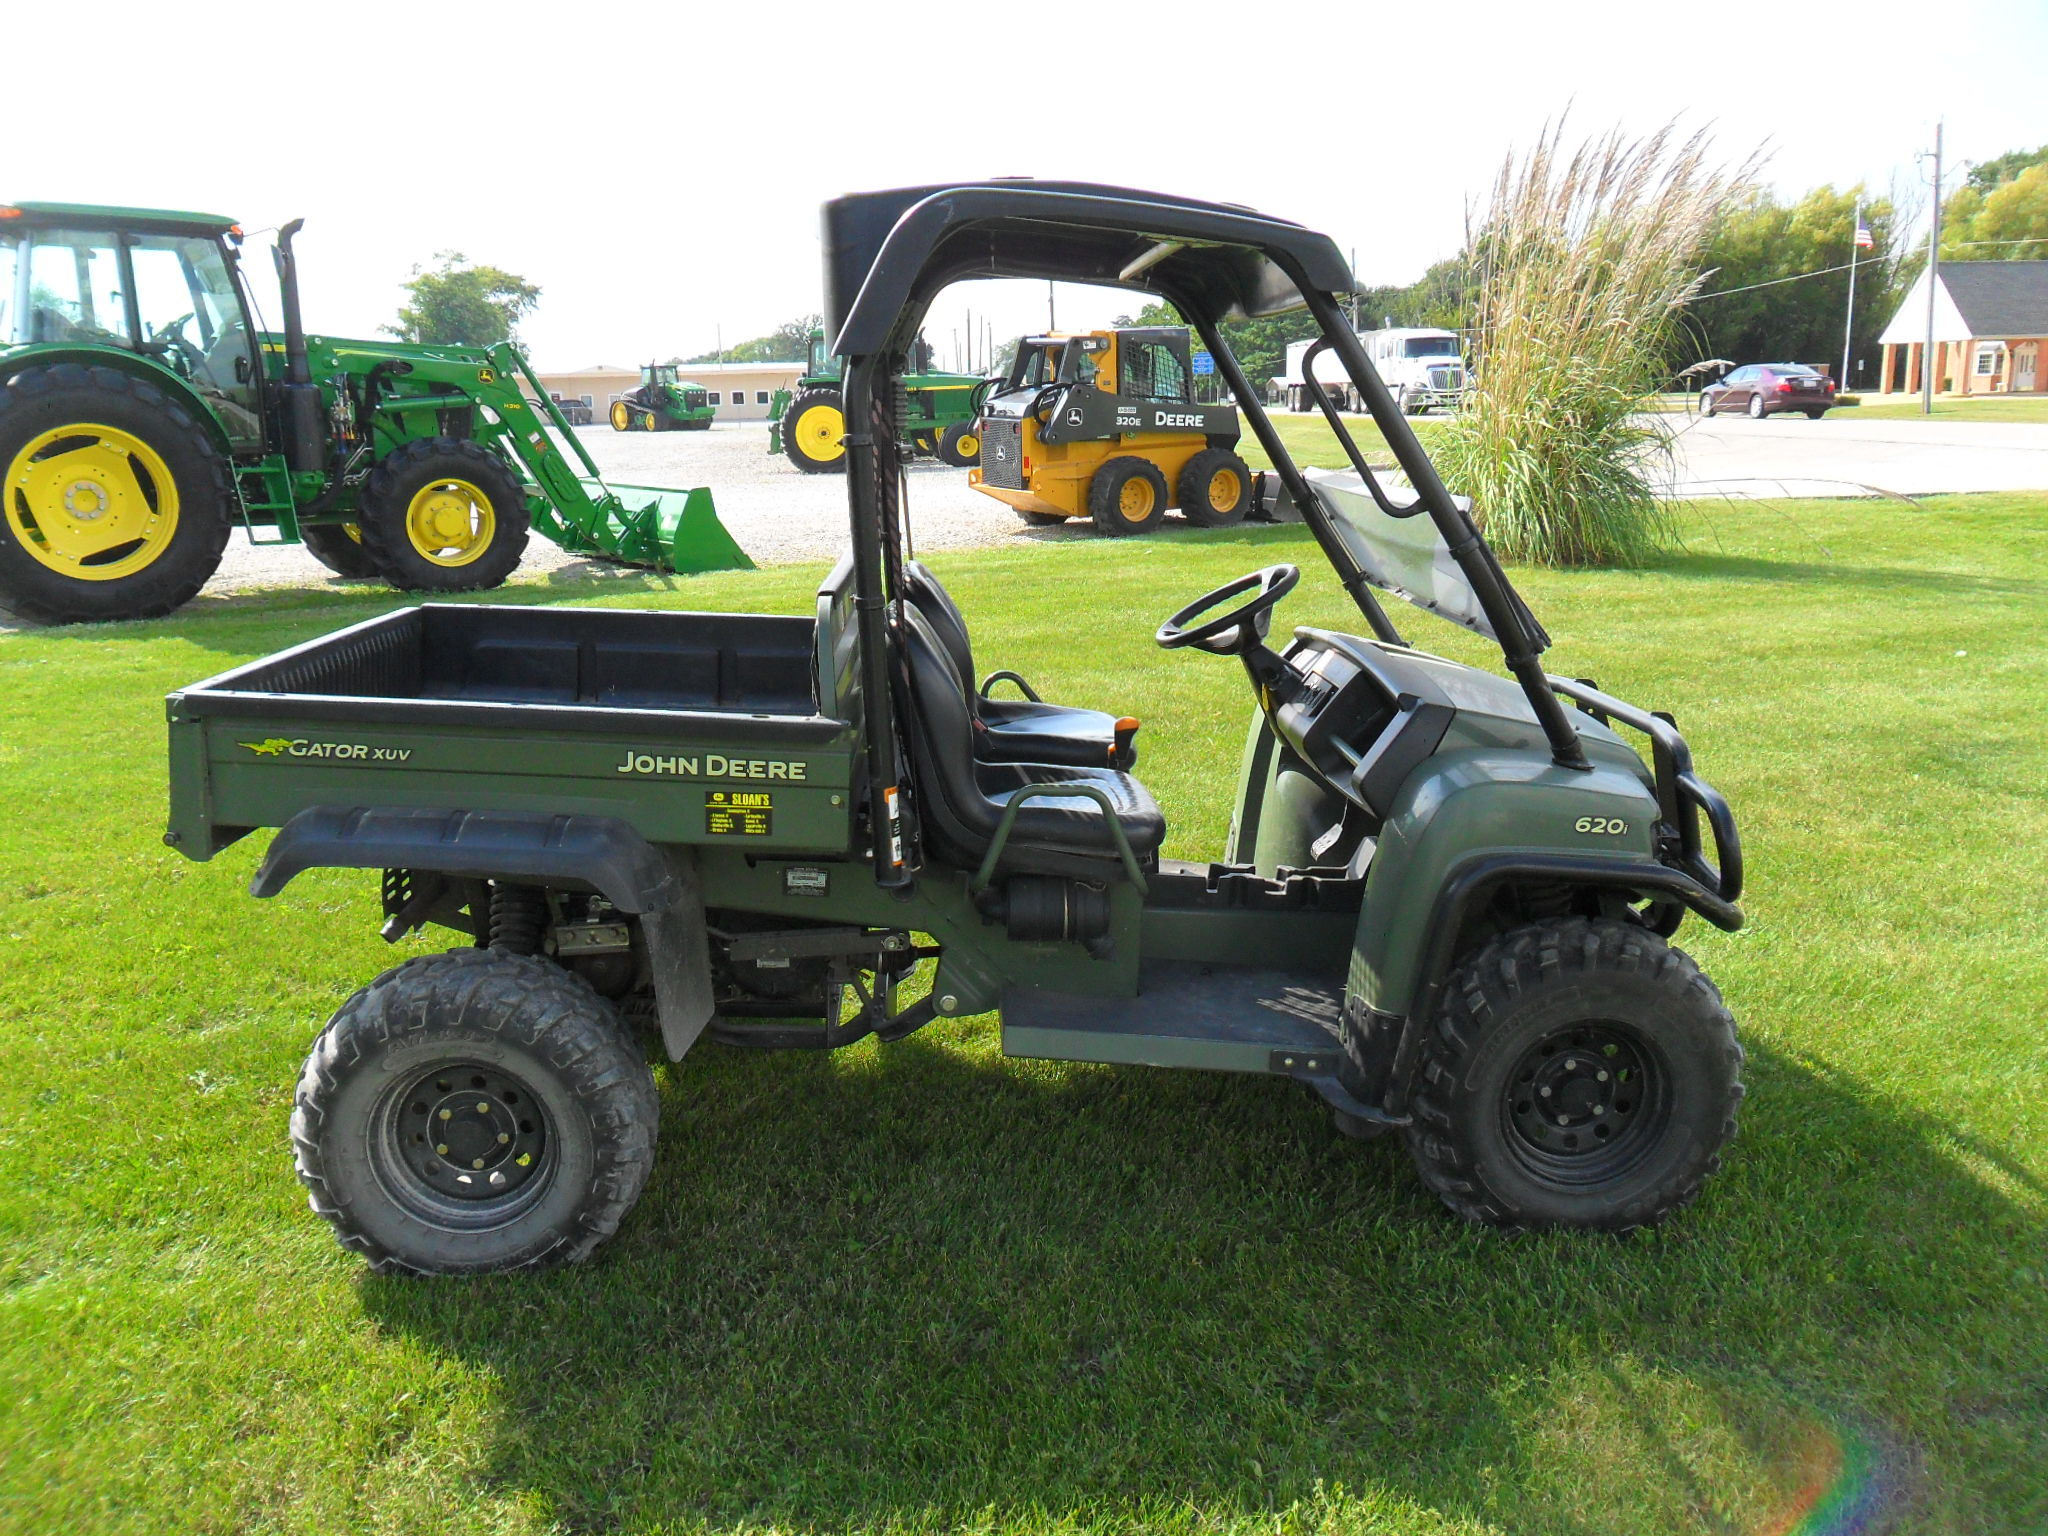 john deere gator xuv 620i atvs gators for sale 63055. Black Bedroom Furniture Sets. Home Design Ideas